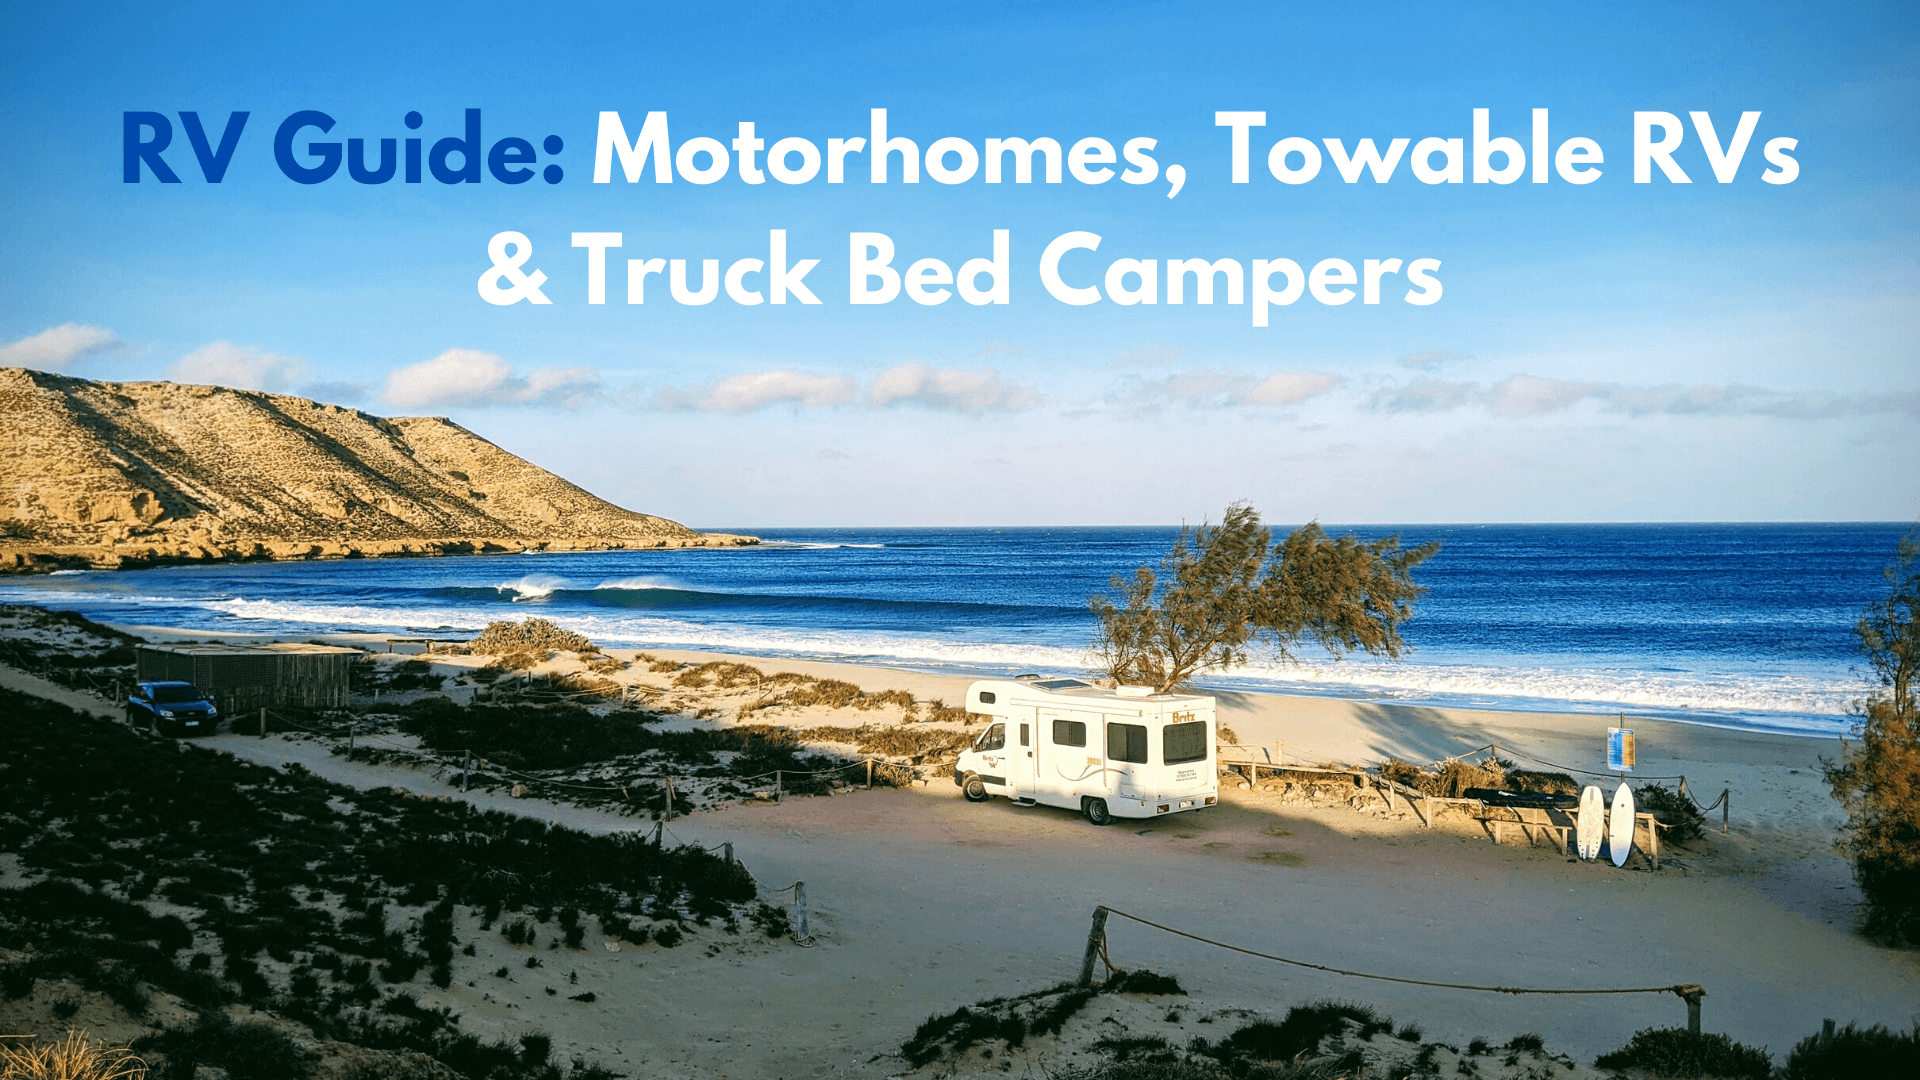 RV Guide: Motorhomes, Towable RVs & Truck Bed Campers